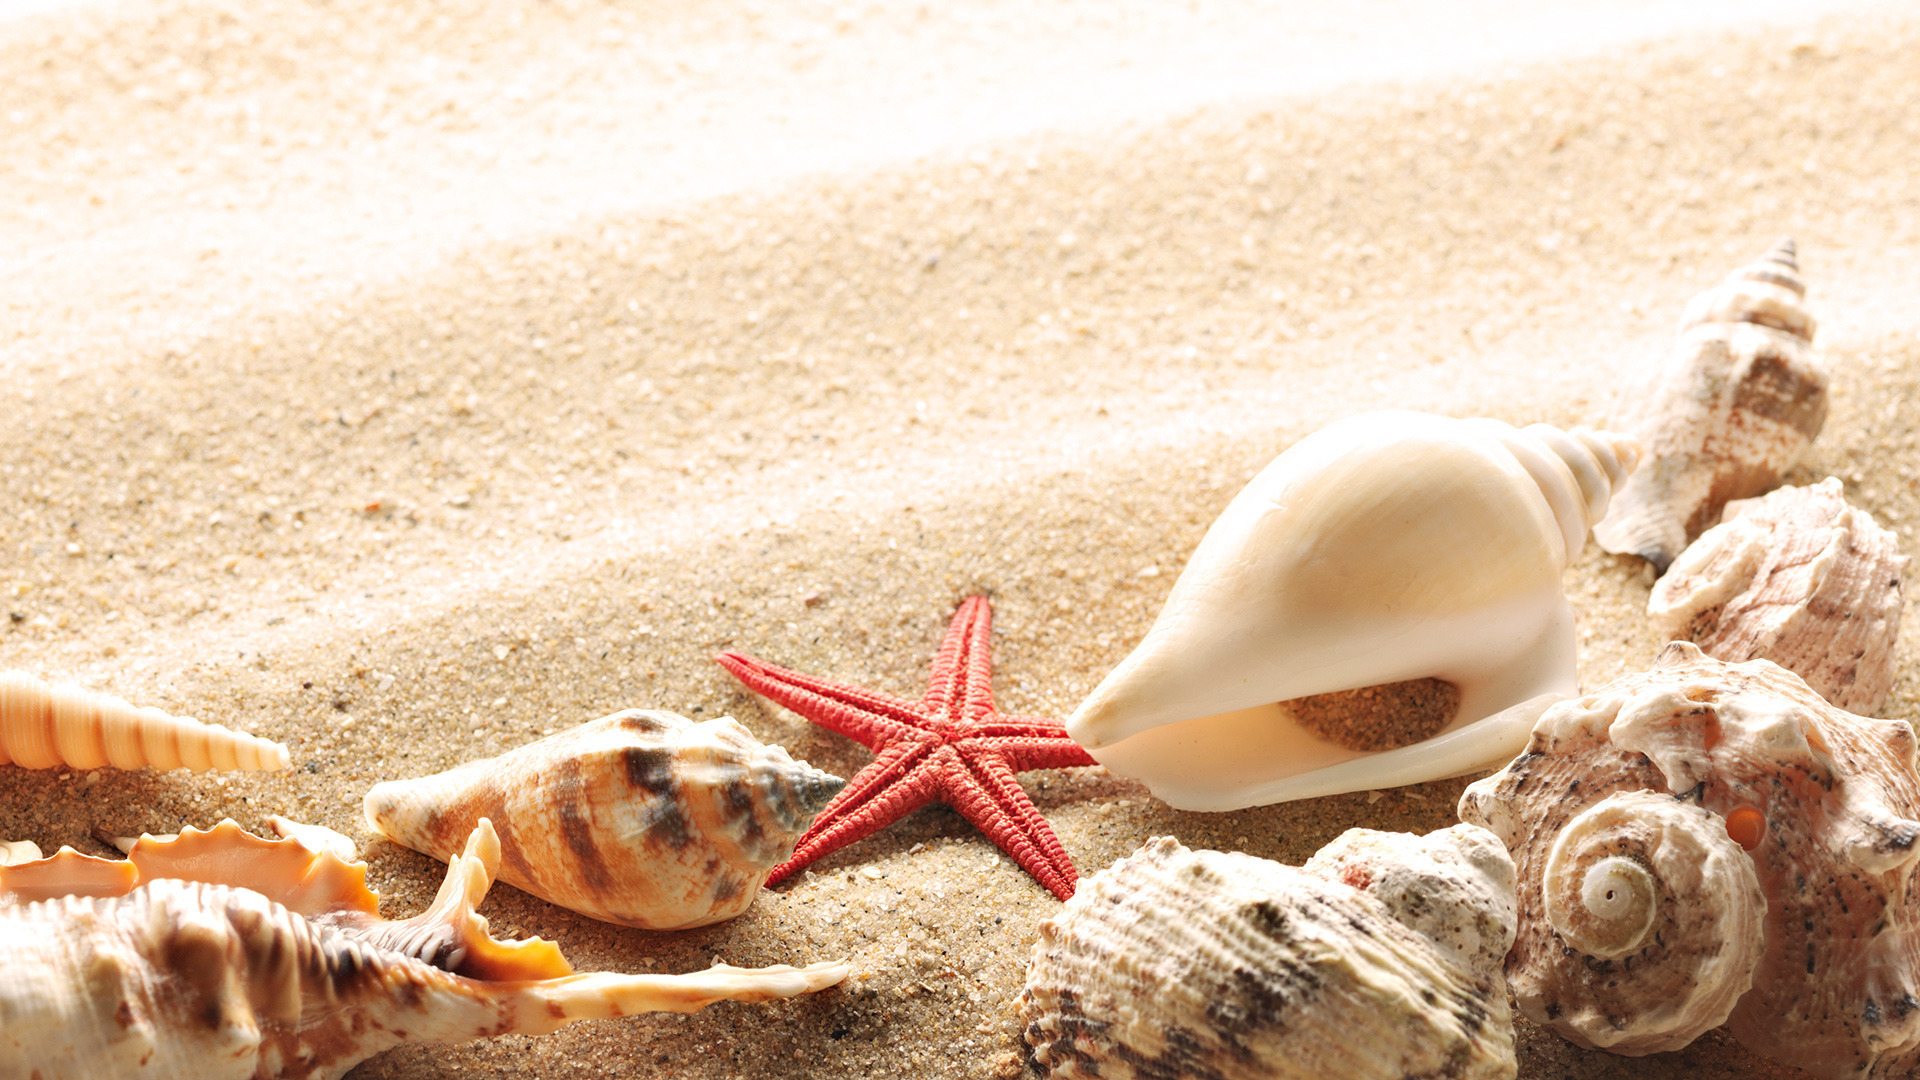 Wallpaper Seashells Summer Beach Sand Sun Theme Macro Download 132777 1920x1080